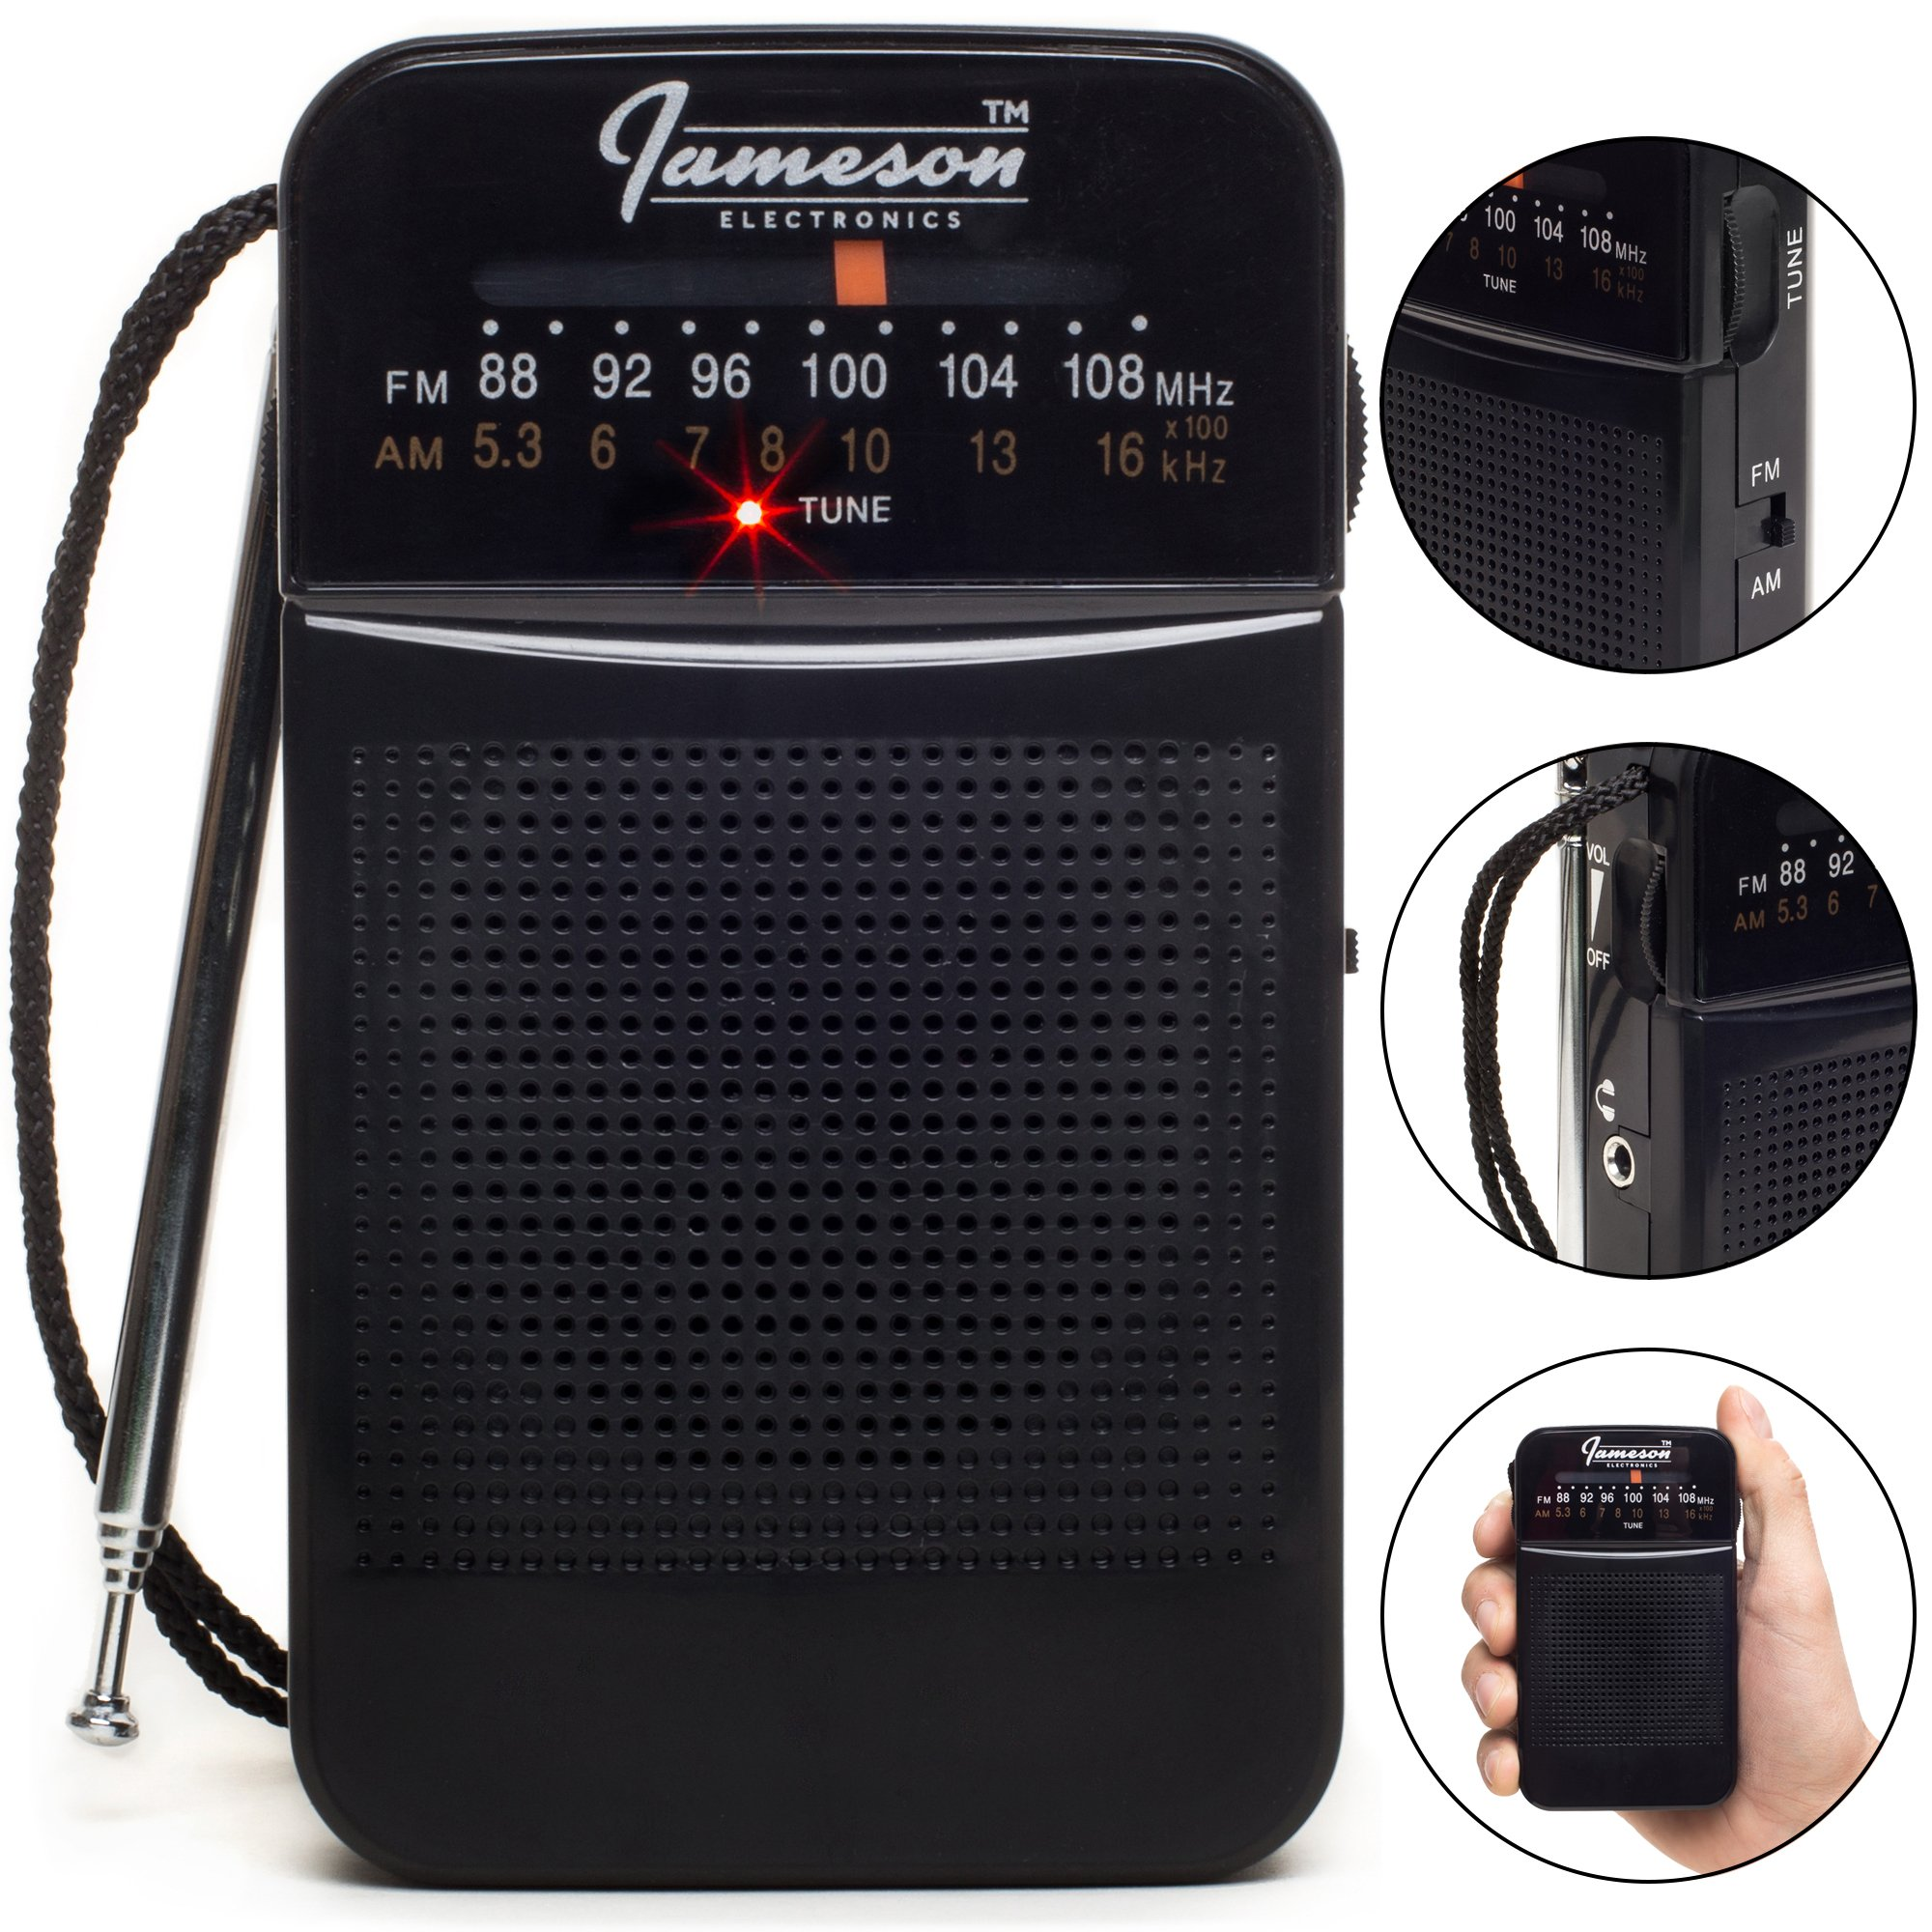 AM // FM Portable Pocket Radio with Best Reception - Small Battery Operated Personal Transistor, Built-in Speaker, 3.5mm Headphone Jack, Easy Tuning, Antenna - Powered by AA Batteries (Black) by Jameson Electronics